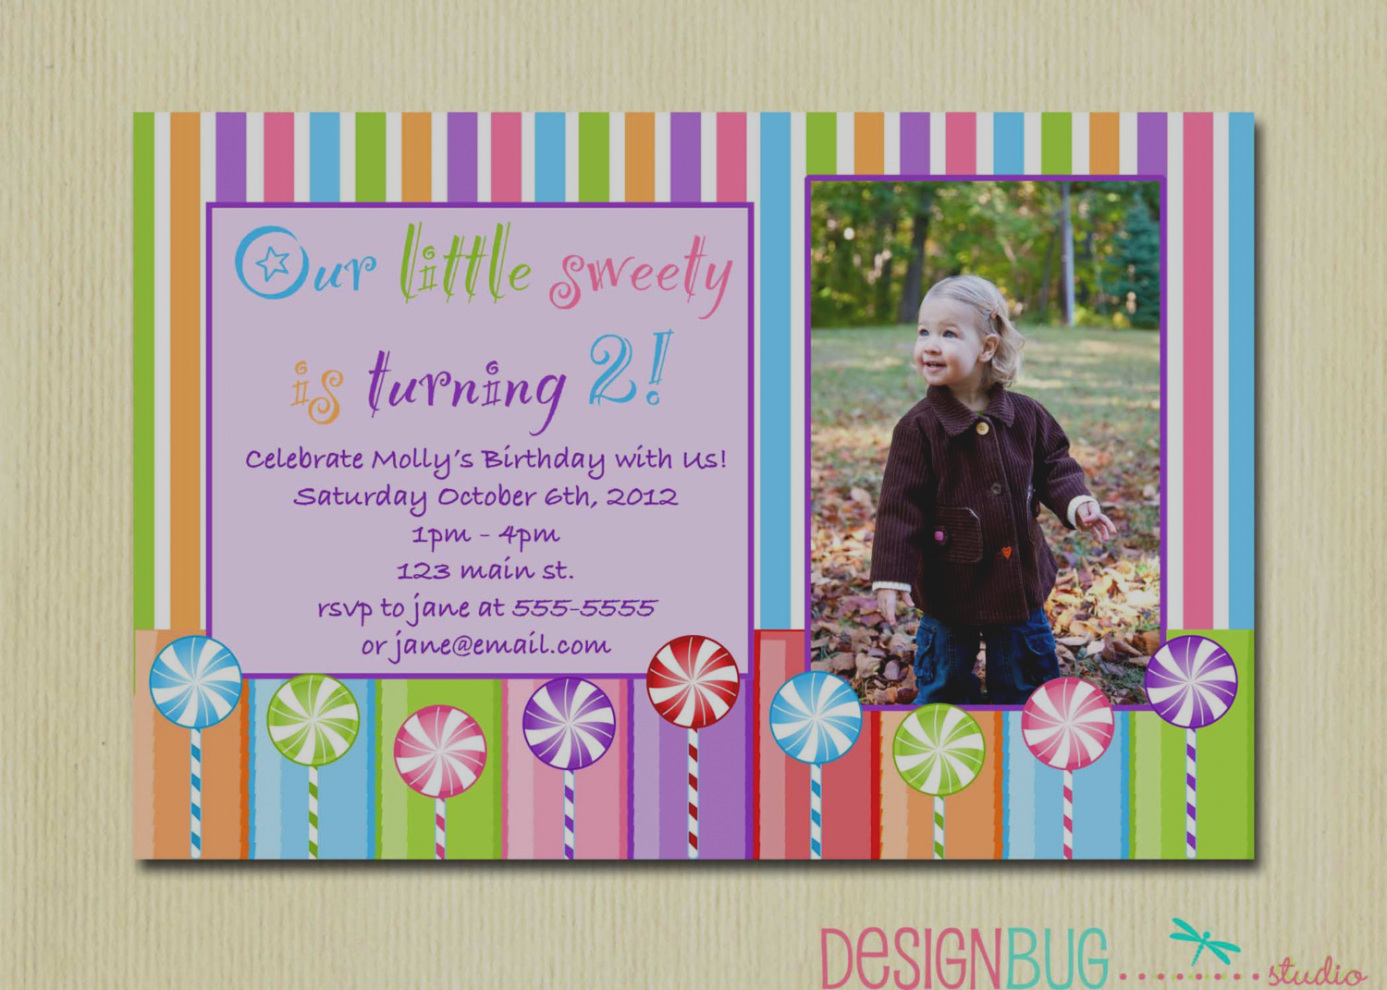 birthday card message for 3 year old boy ; images-of-2-year-old-birthday-card-messages-message-for-3-boy